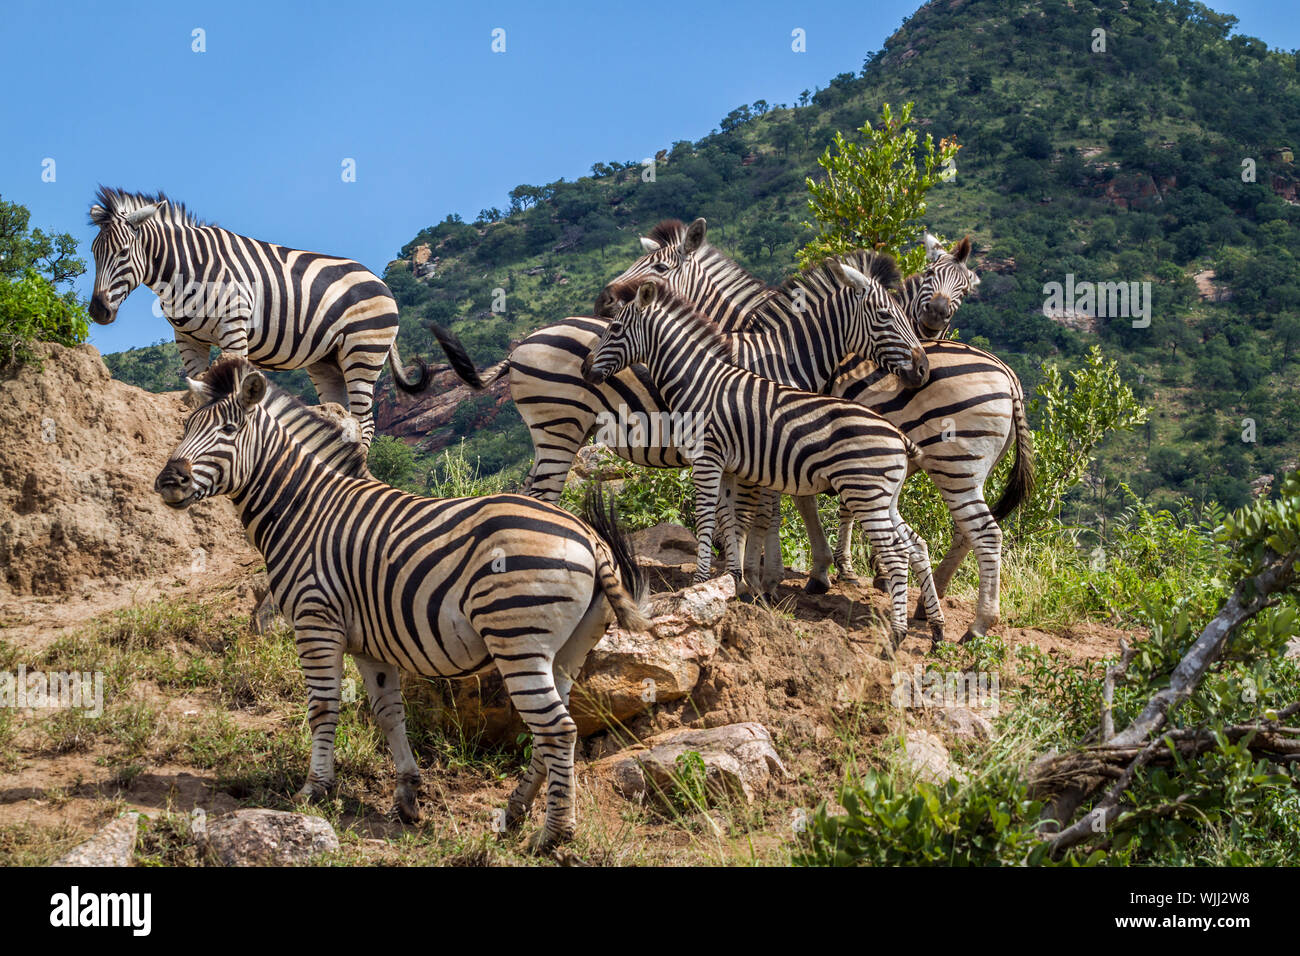 Small group of Plains zebras standing on rocks in Kruger National park, South Africa ; Specie Equus quagga burchellii family of Equidae Stock Photo